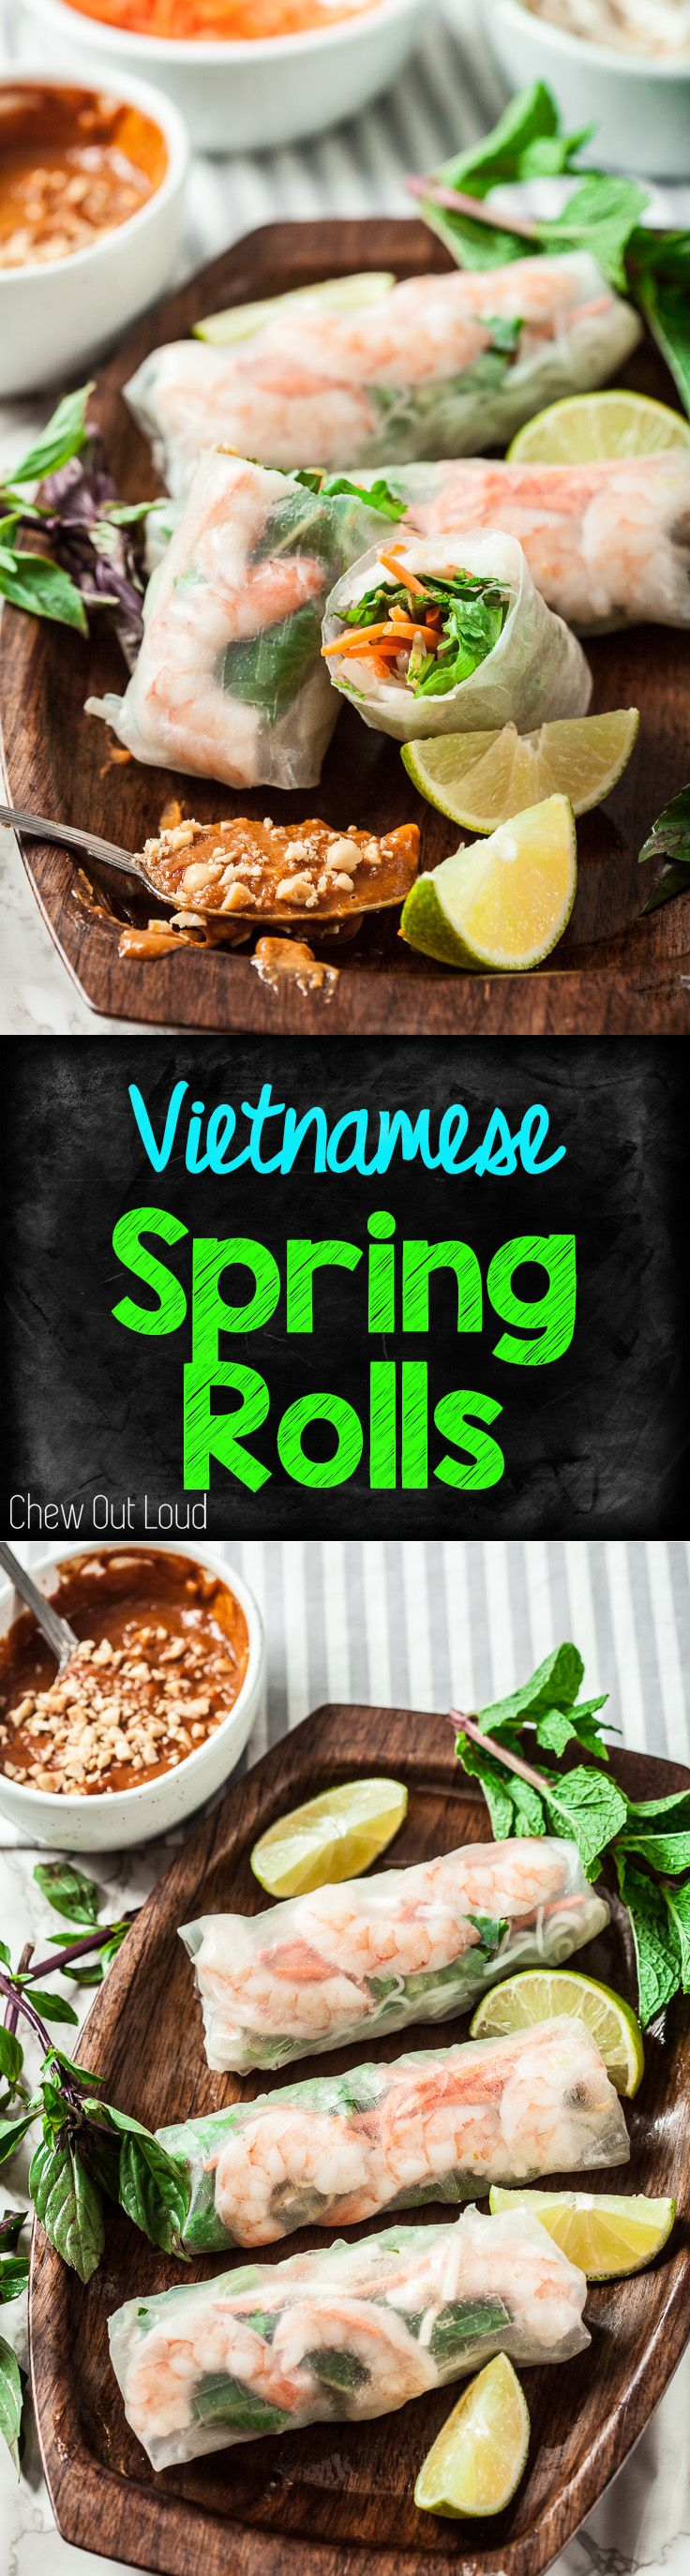 How to Make Vietnamese Spring Rolls! So healthy, light, and deeelish! Amazing peanut dipping sauce. (GF) #glutenfree #gf #vietnamese #springrolls #appetizer www.chewoutloud.com